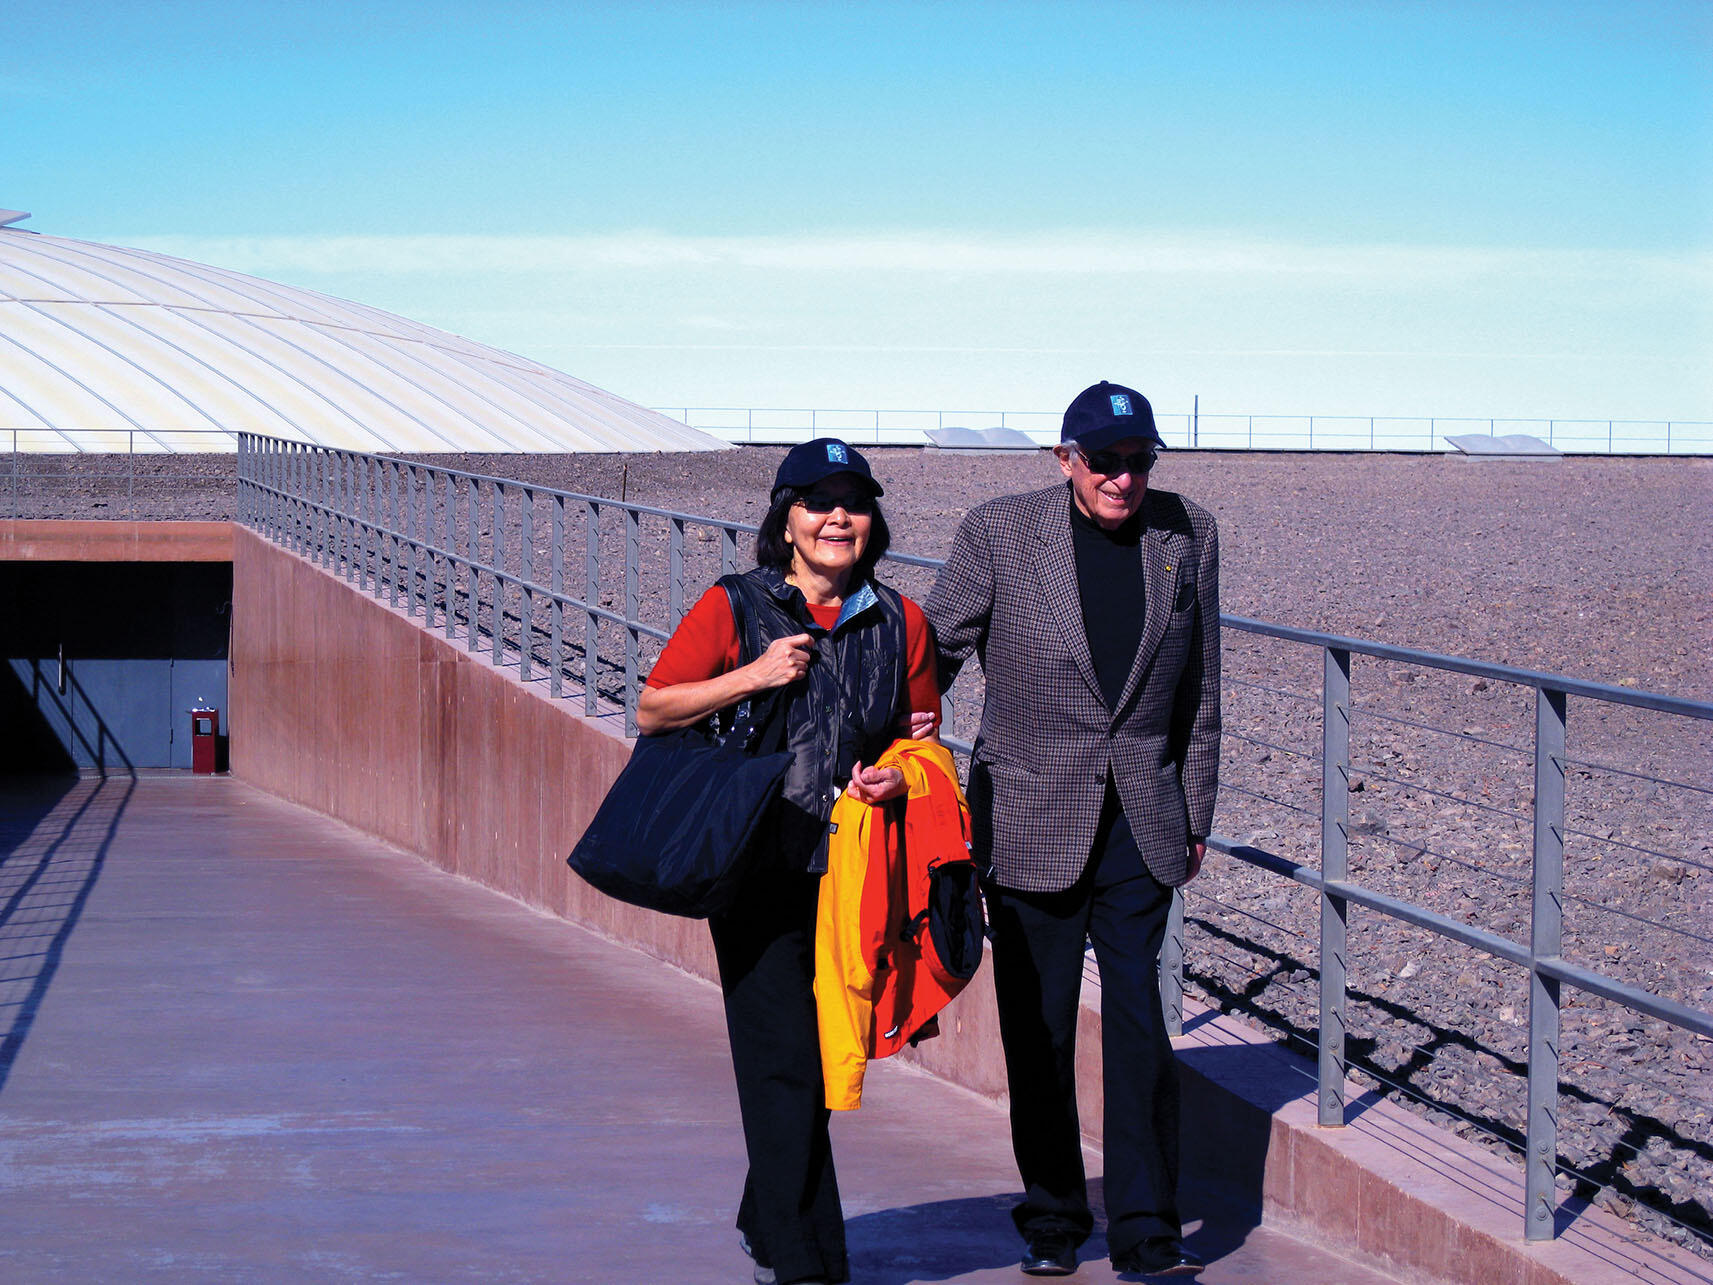 Stan and Rosa Ovshinsky outside the domes at the Paranal Observatory in Chile's Atacama Desert, 2009. (Photo by Beatriz Manz.)